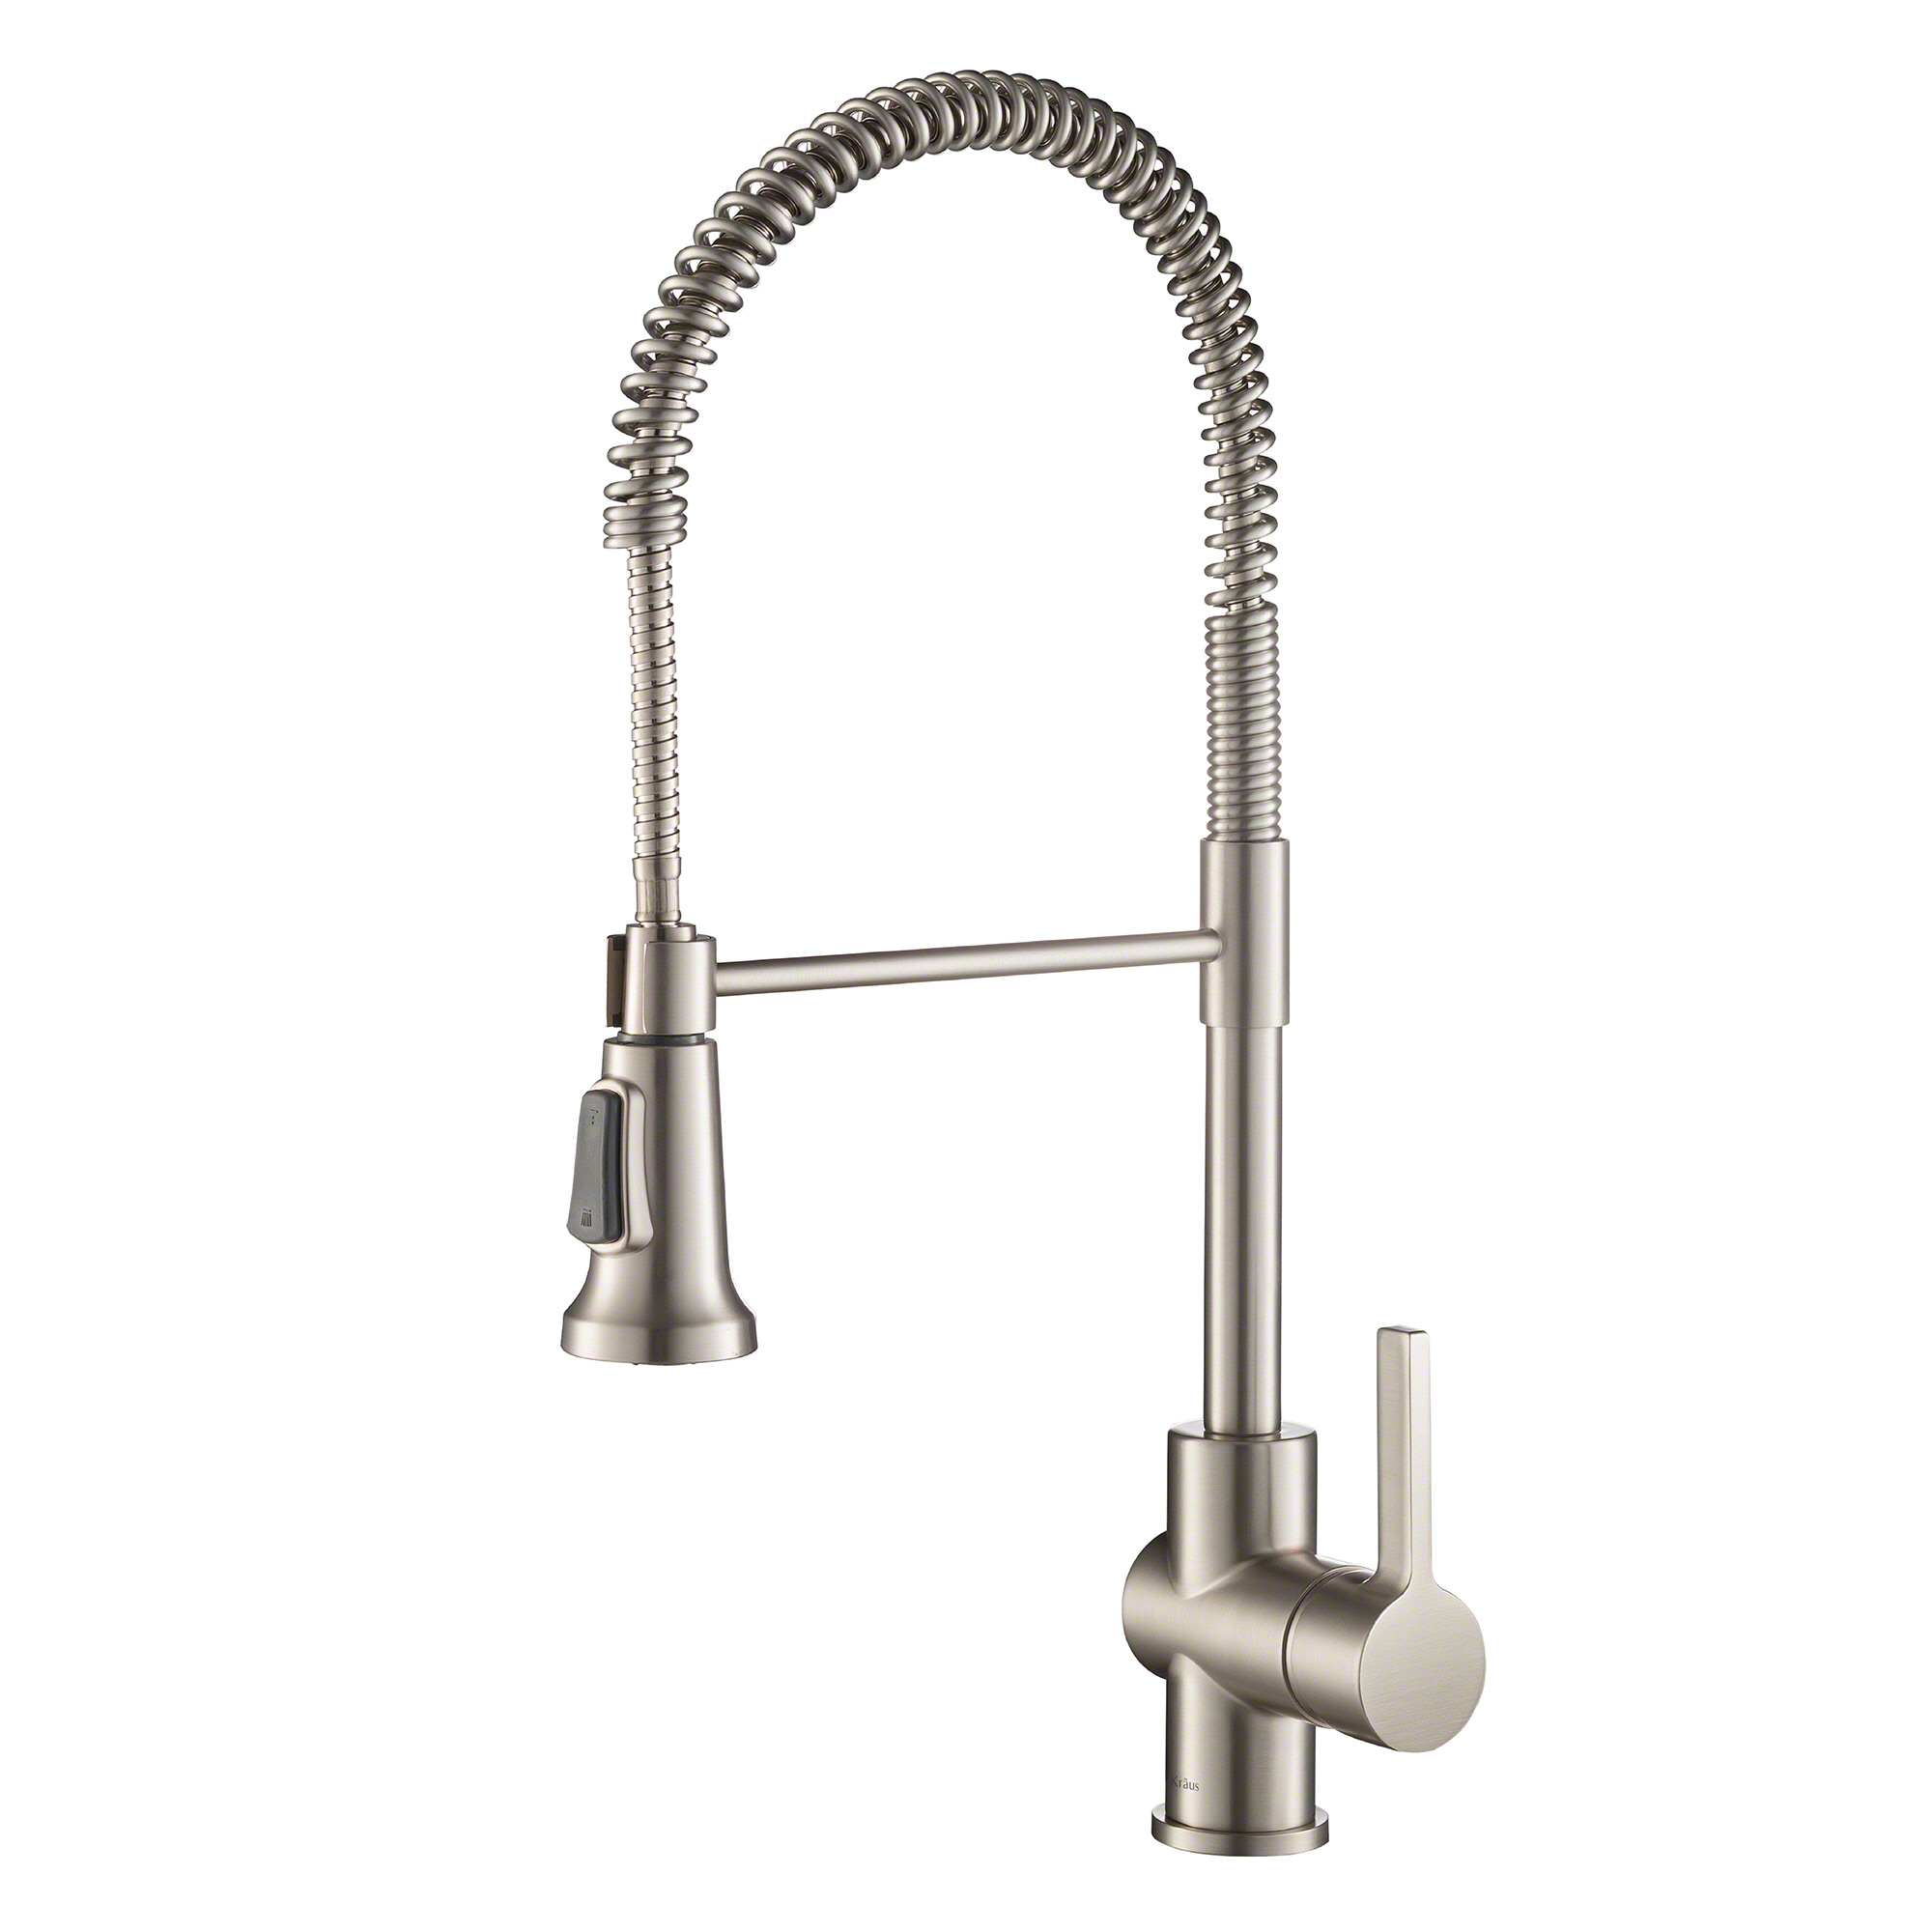 Kraus Britt Single Handle Commercial Kitchen Faucet With Dual